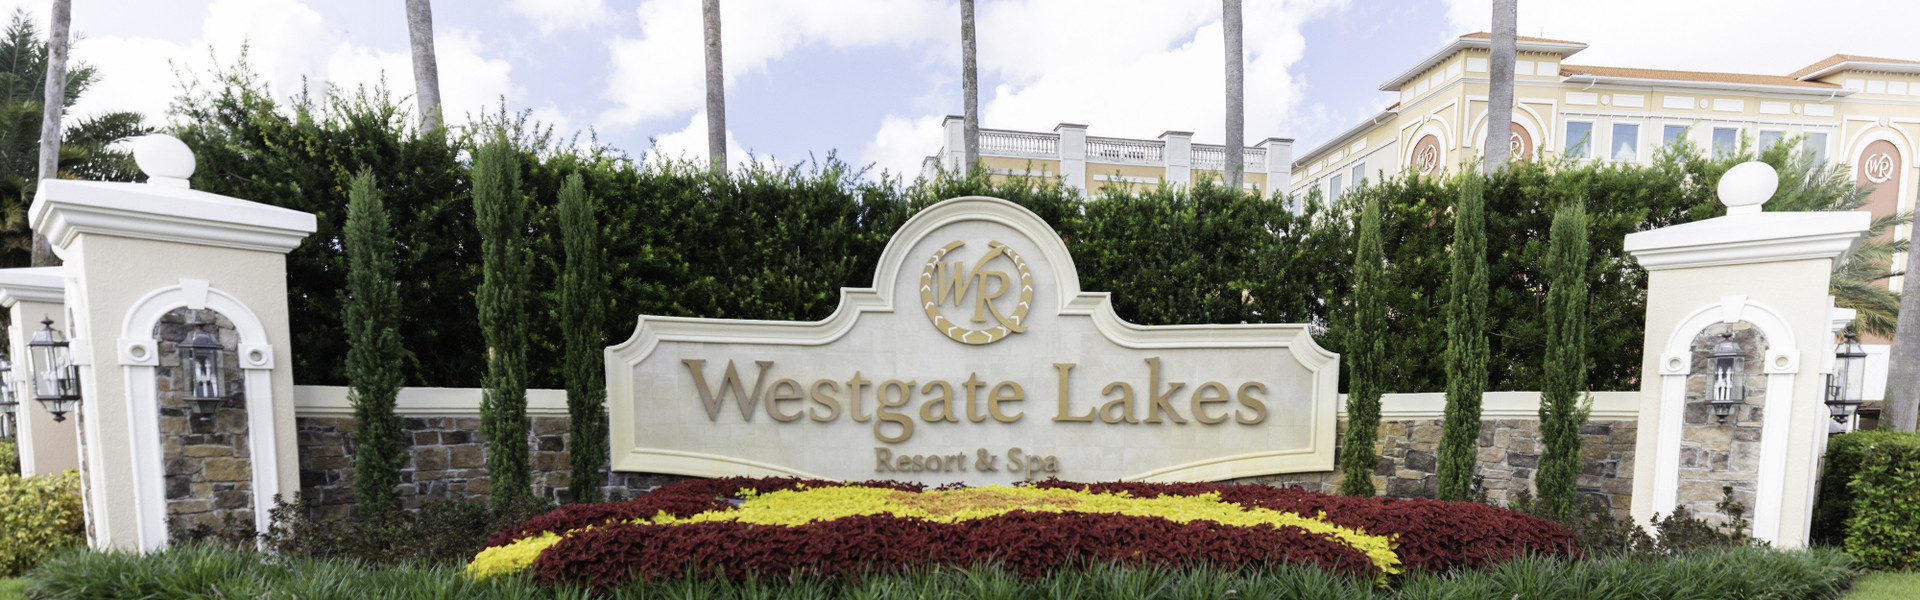 Frequently Asked Questions | FAQs | Westgate Lakes Resort & Spa